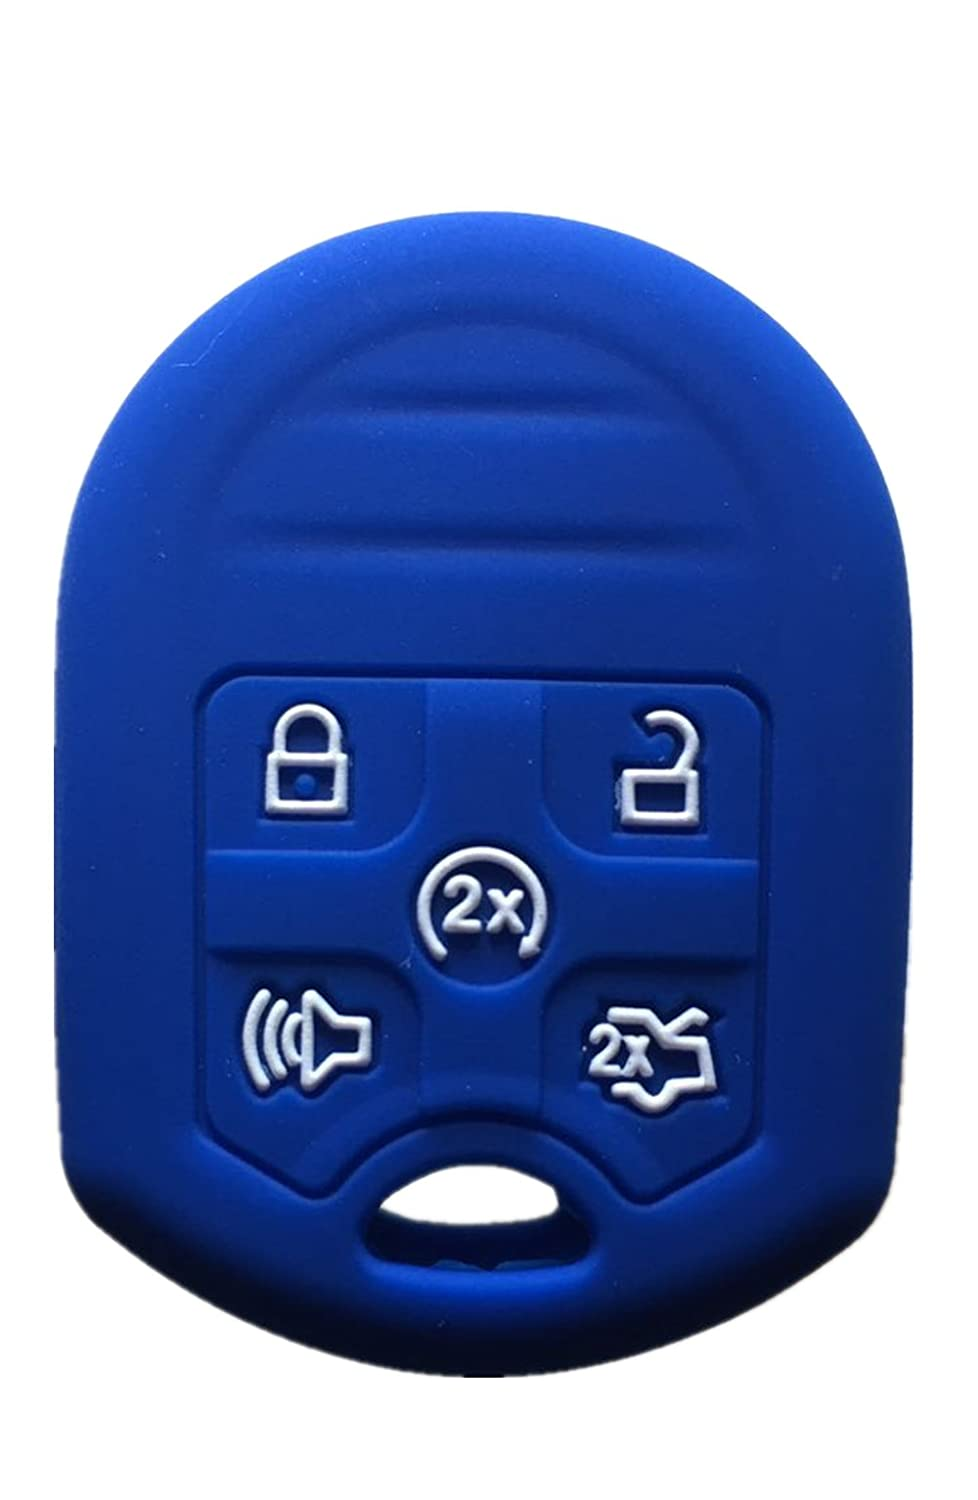 Rpkey Silicone Keyless Entry Remote Control Key Fob Cover Case protector For Ford Edge Expedition Explorer Flex Focus Fusion Mustang Taurus 164-R8000 CWTWB1U793